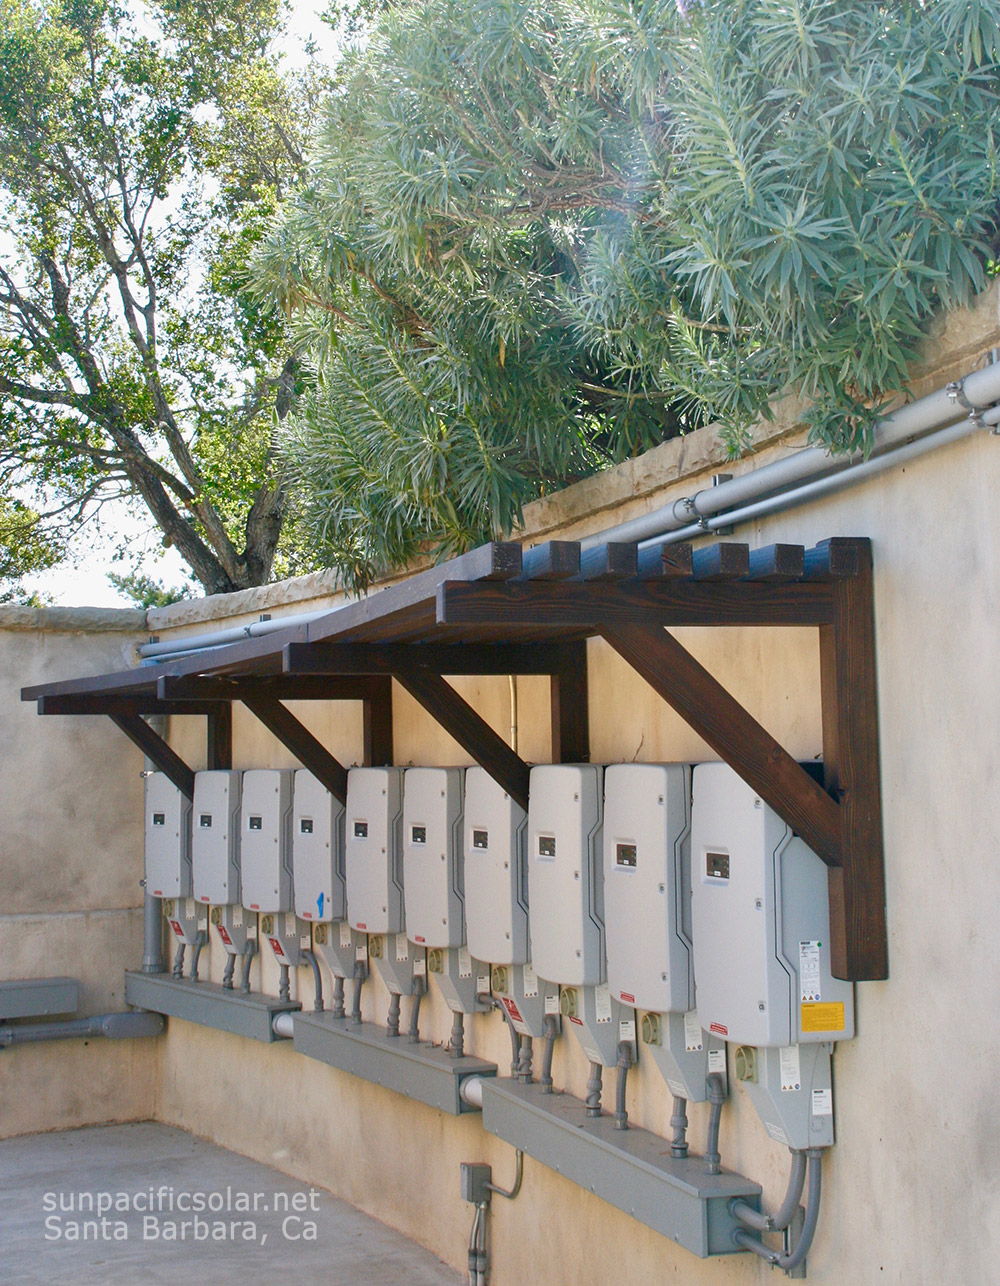 Some of the SMA SunyBoy inverters for a 101.43kW system in Summerland, California.